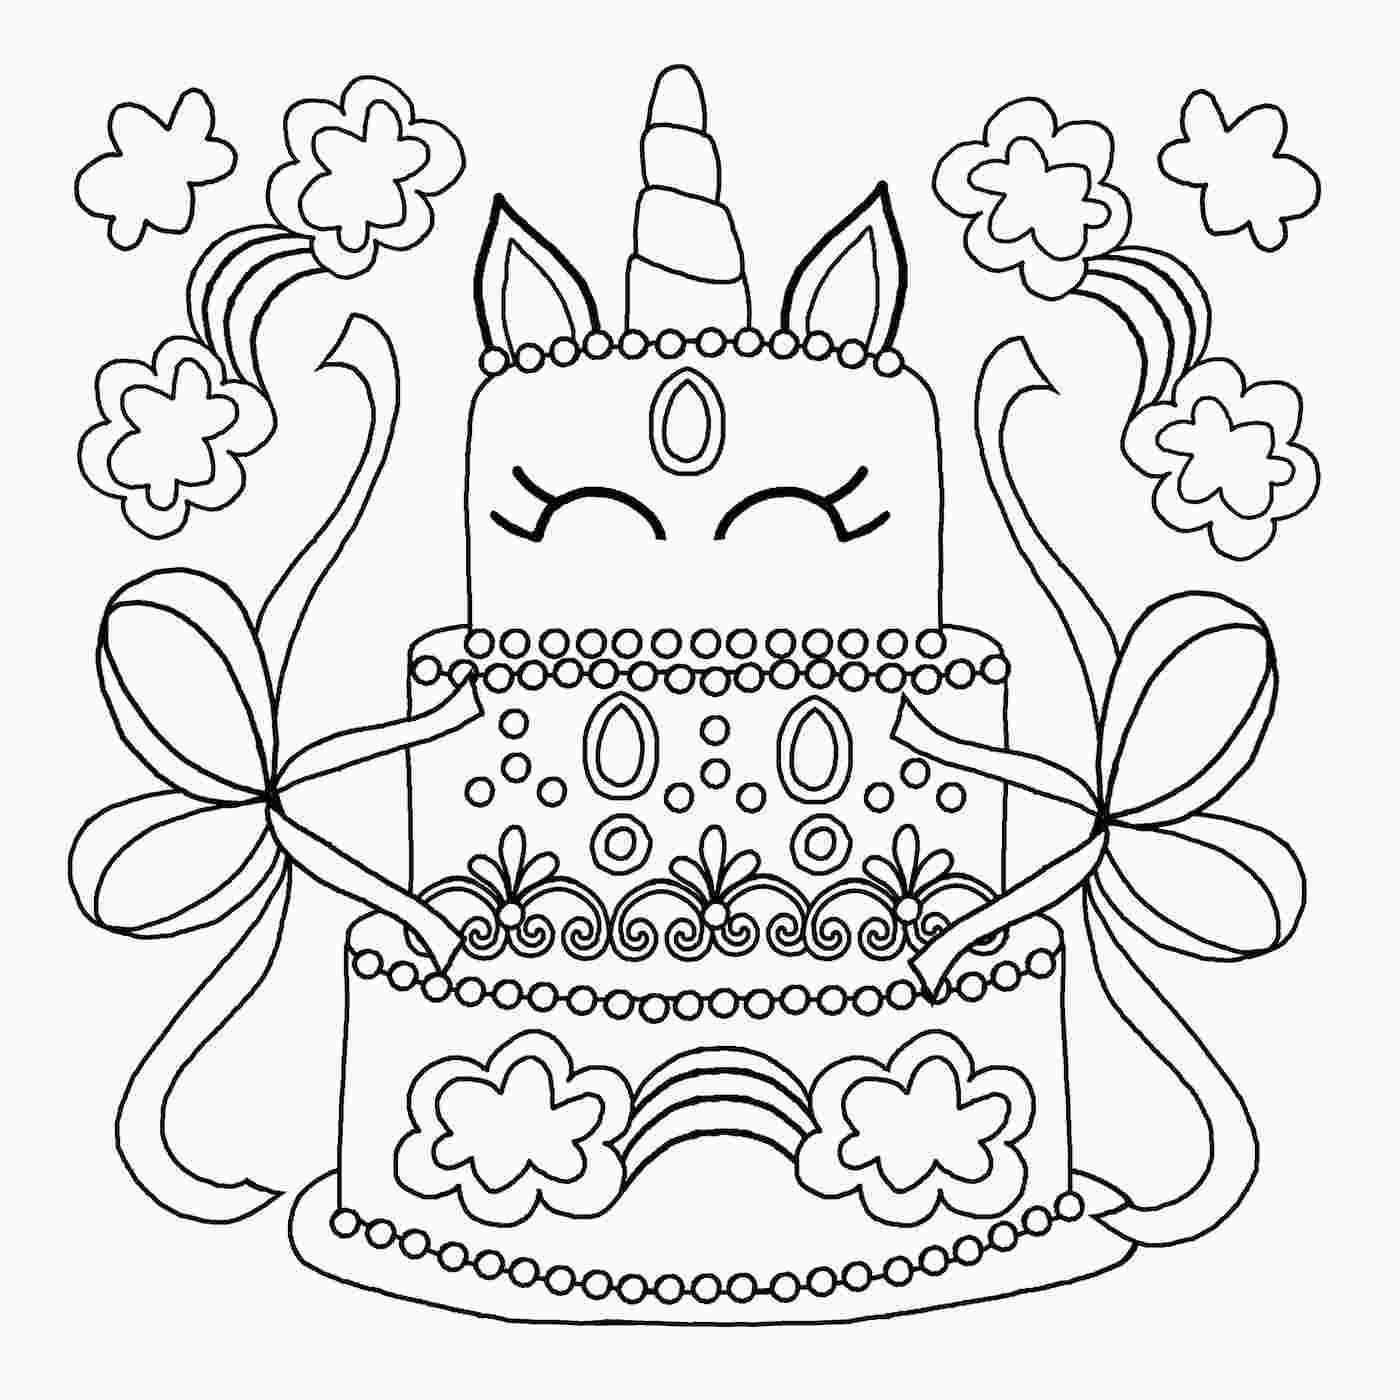 Unicorn Cake Coloring Sheet Mermaid Coloring Pages Unicorn Coloring Pages Christmas Coloring Pages